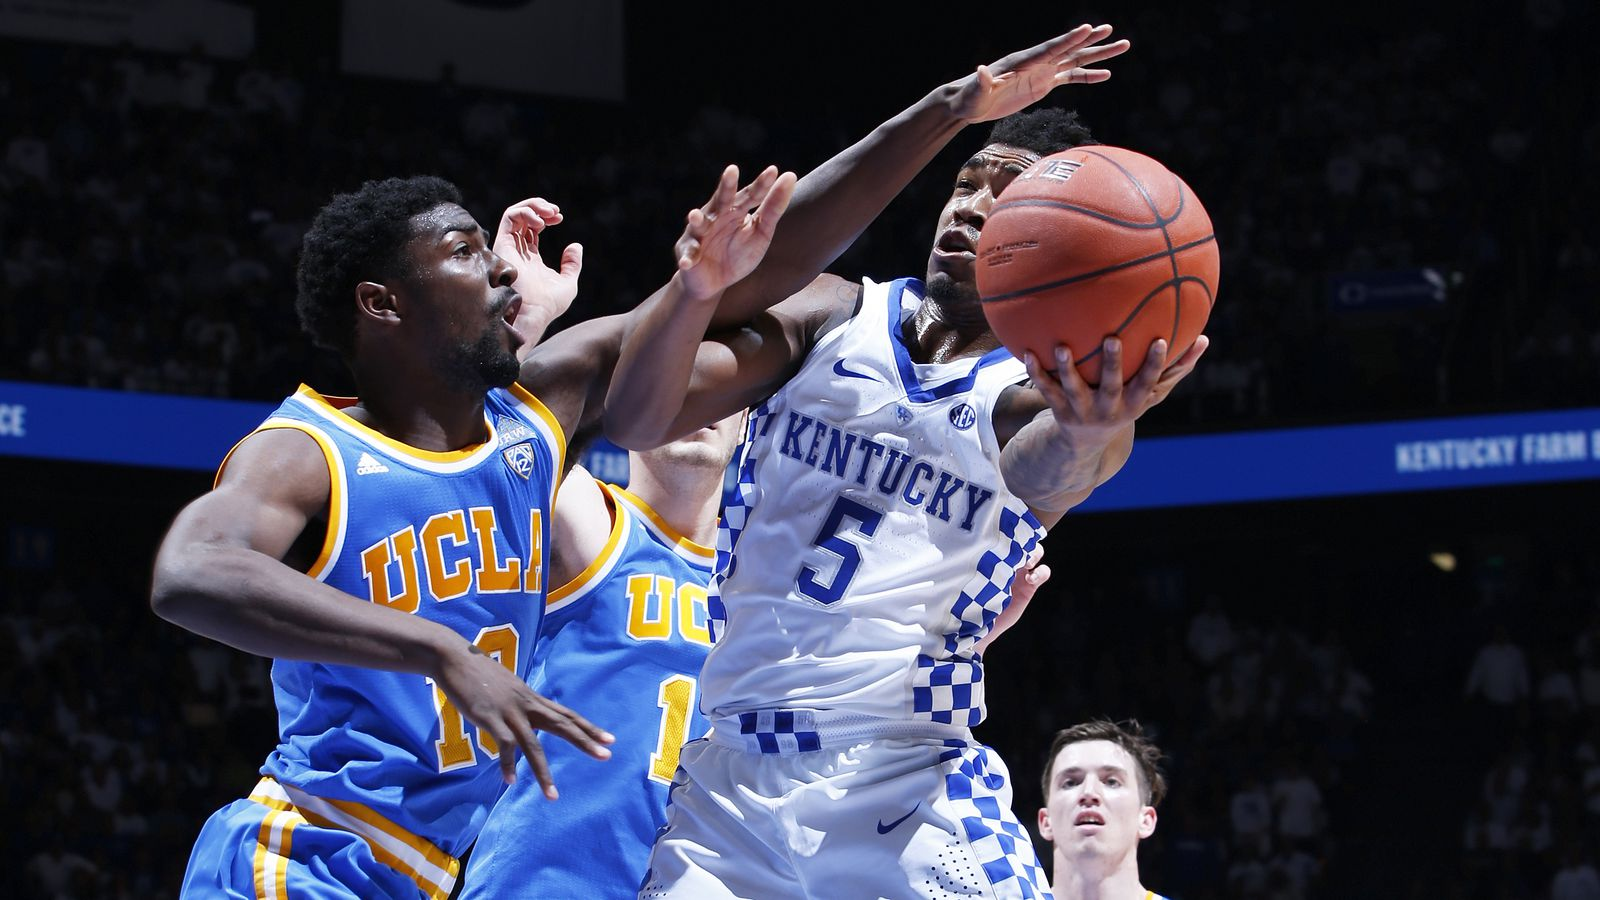 Kentucky Basketball Vs Team Toronto Game Time Tv Channel: Kentucky Wildcats Vs UCLA Bruins Game Time, TV Channel And